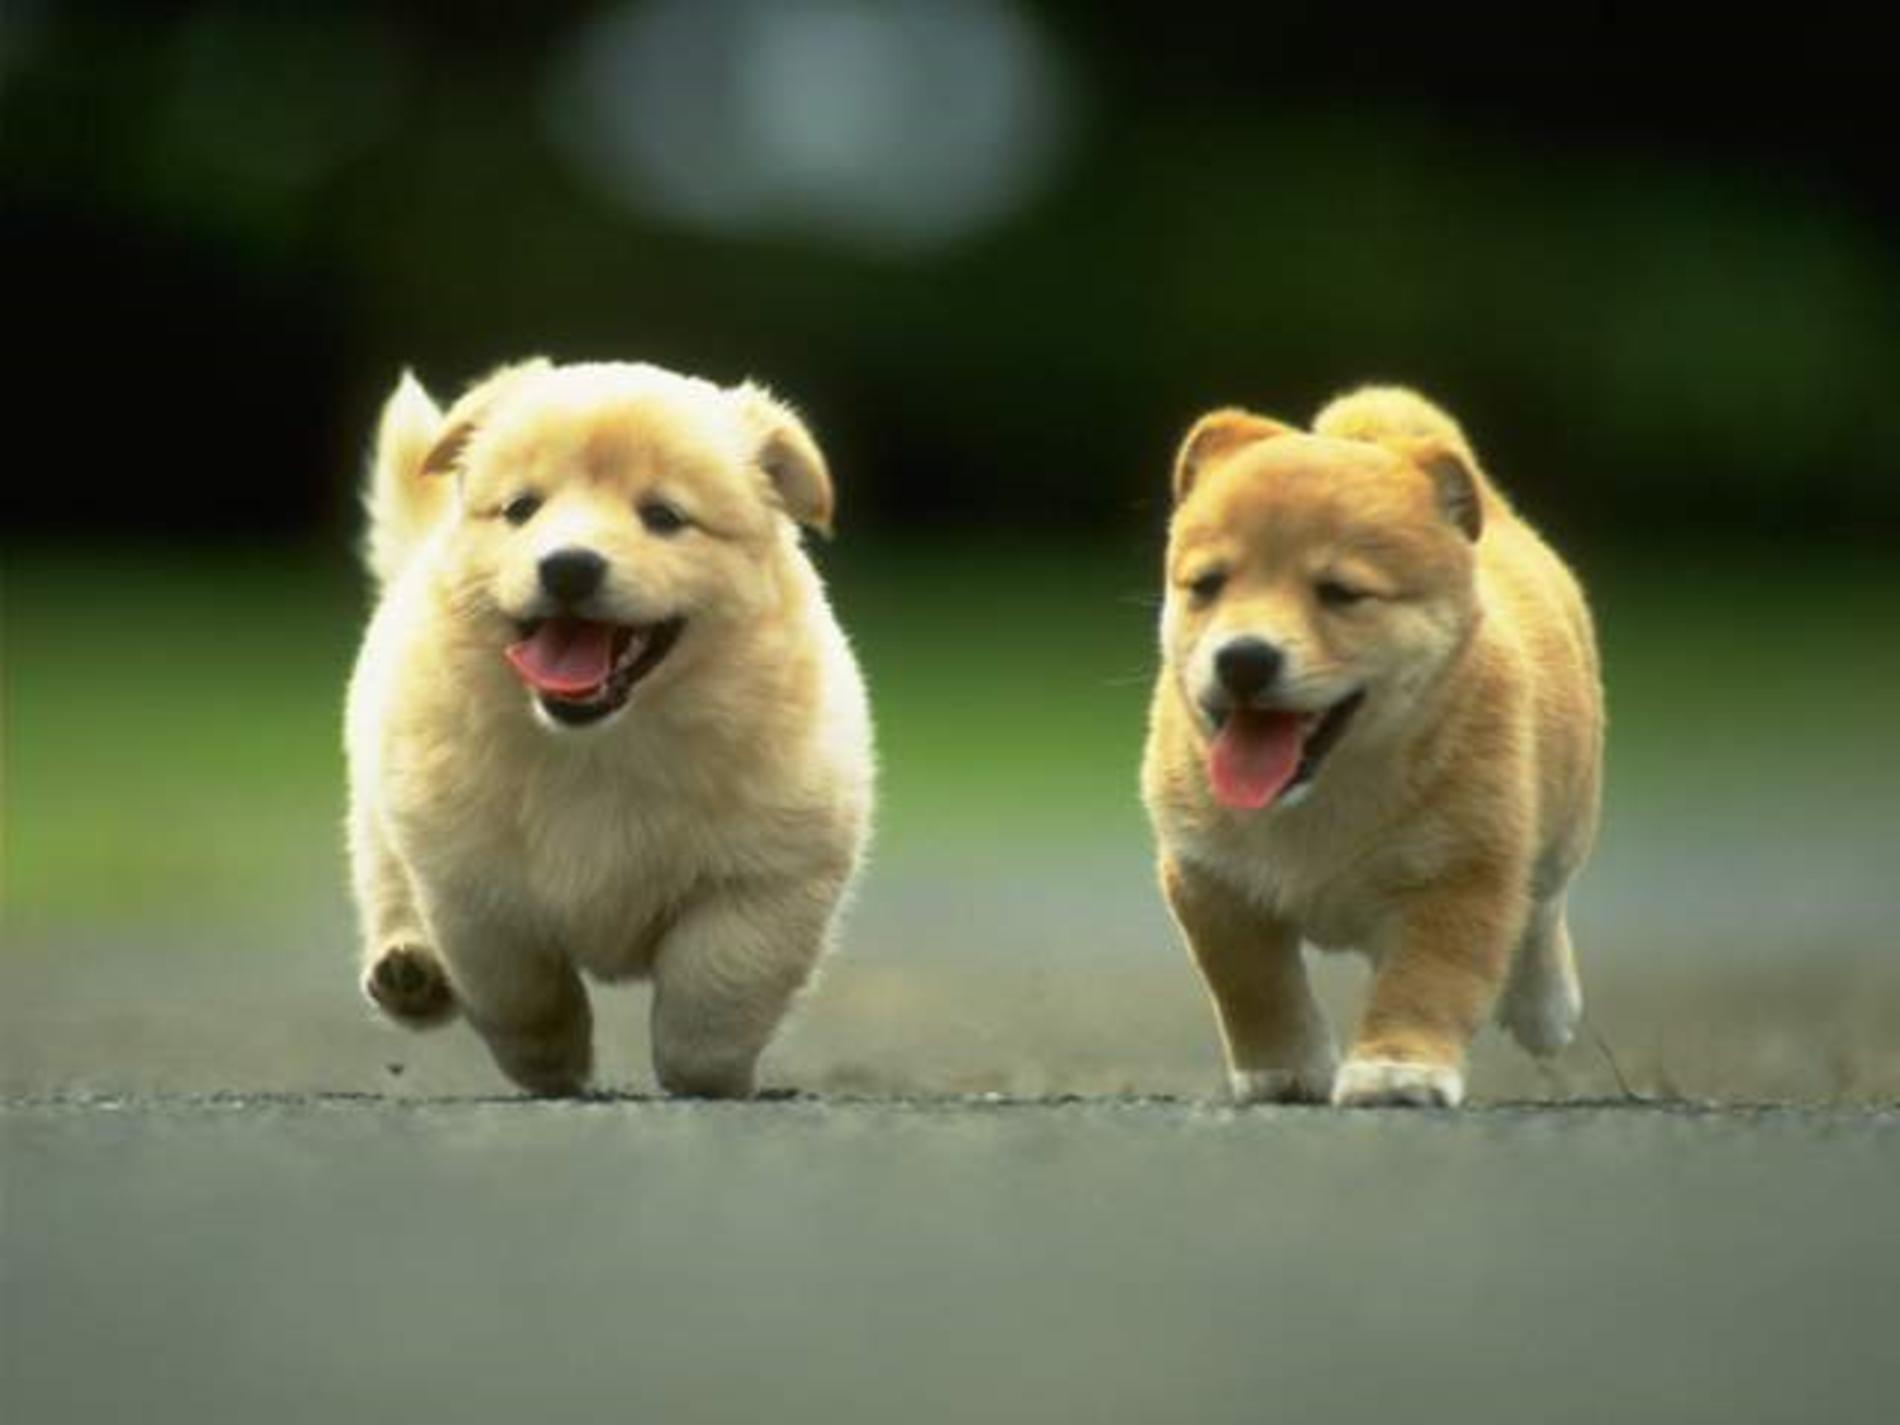 Running Kintamani puppies wallpaper